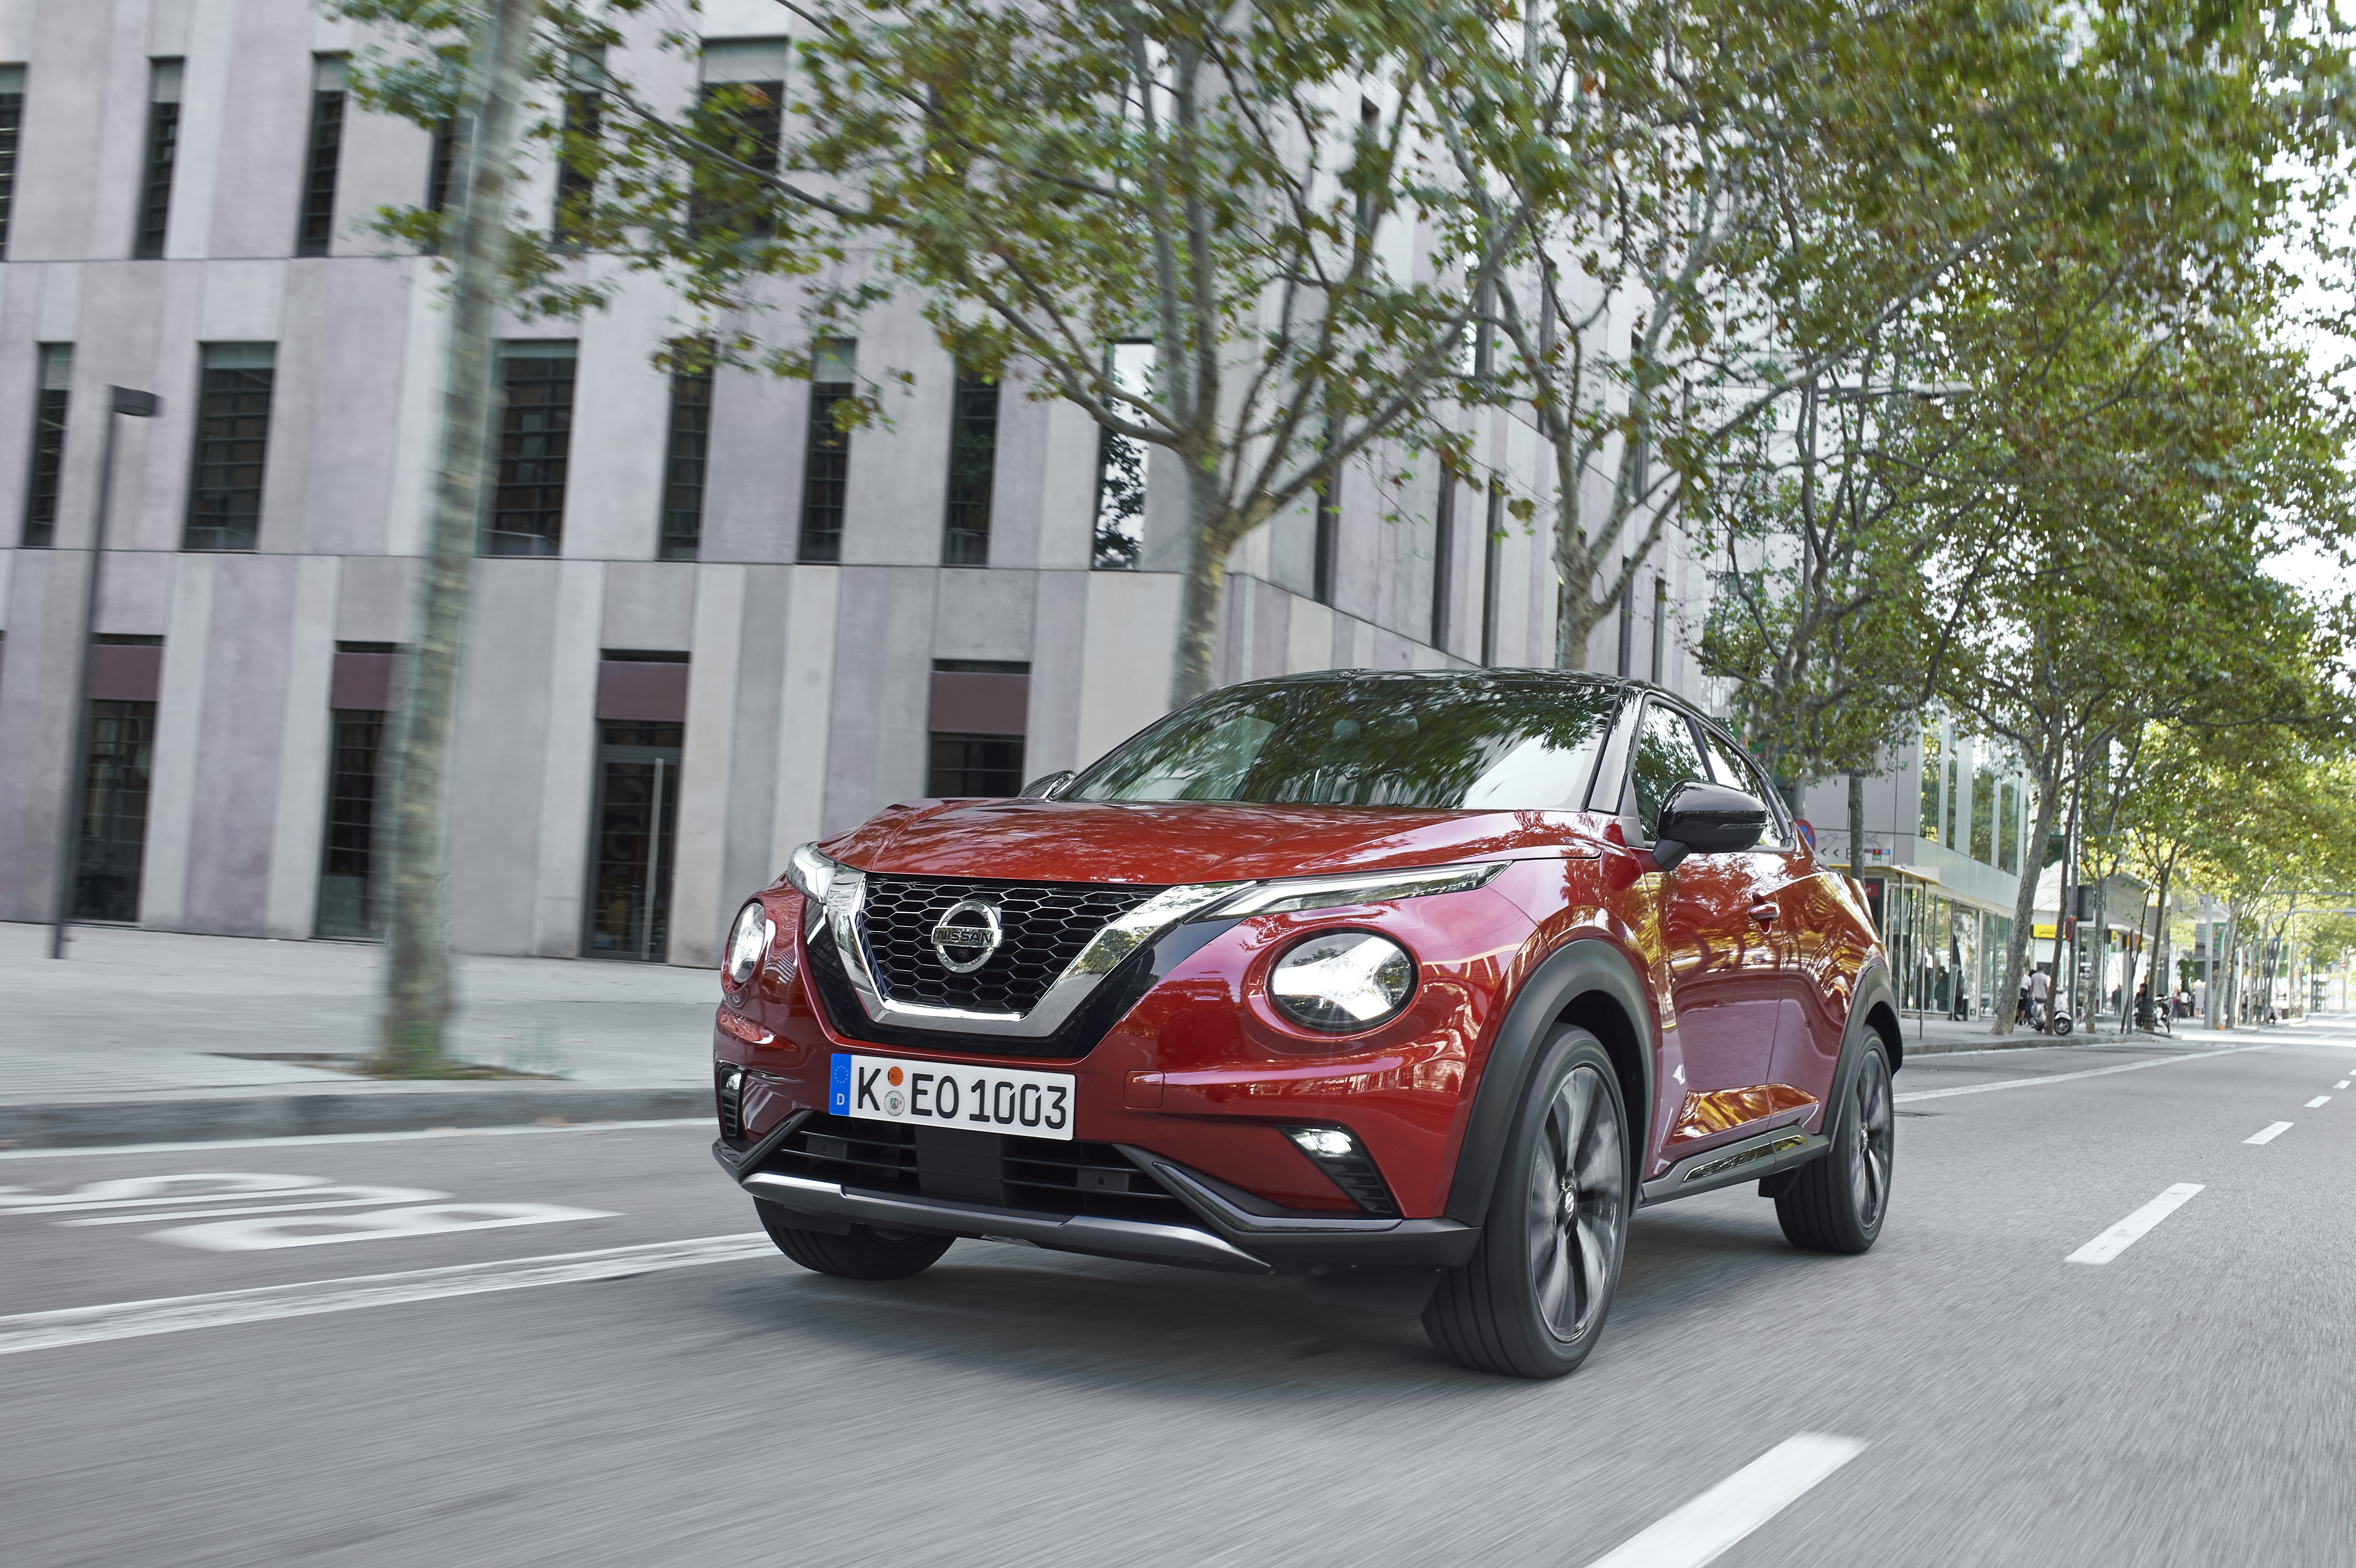 The new Juke arrives to replace the succesful predecessor